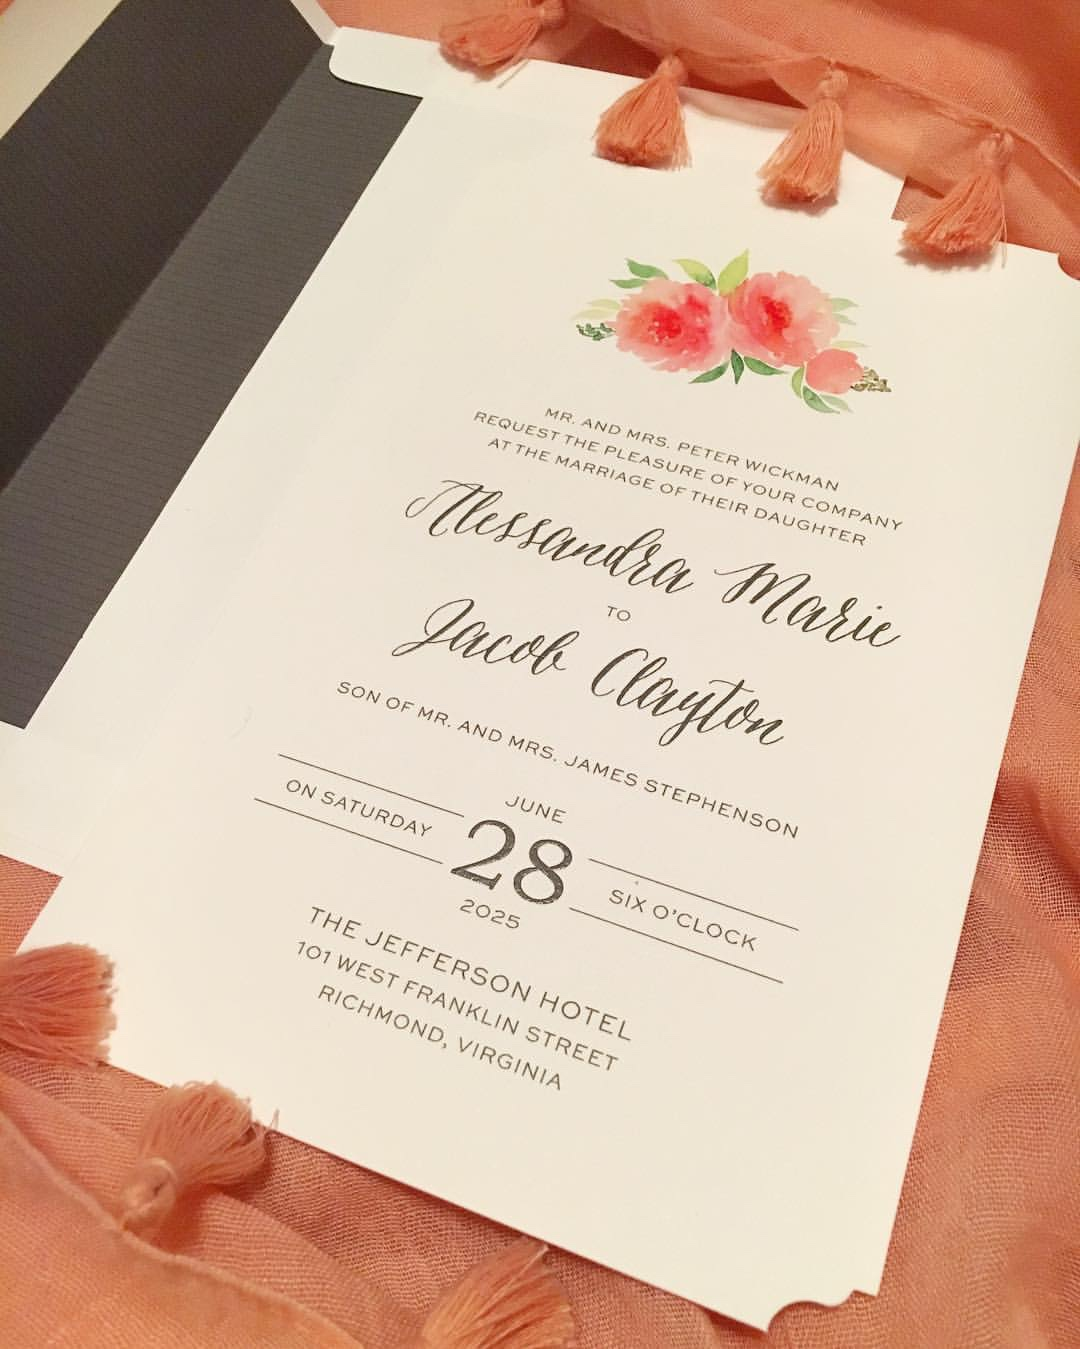 watercolor floral embellishment with casual calligraphy